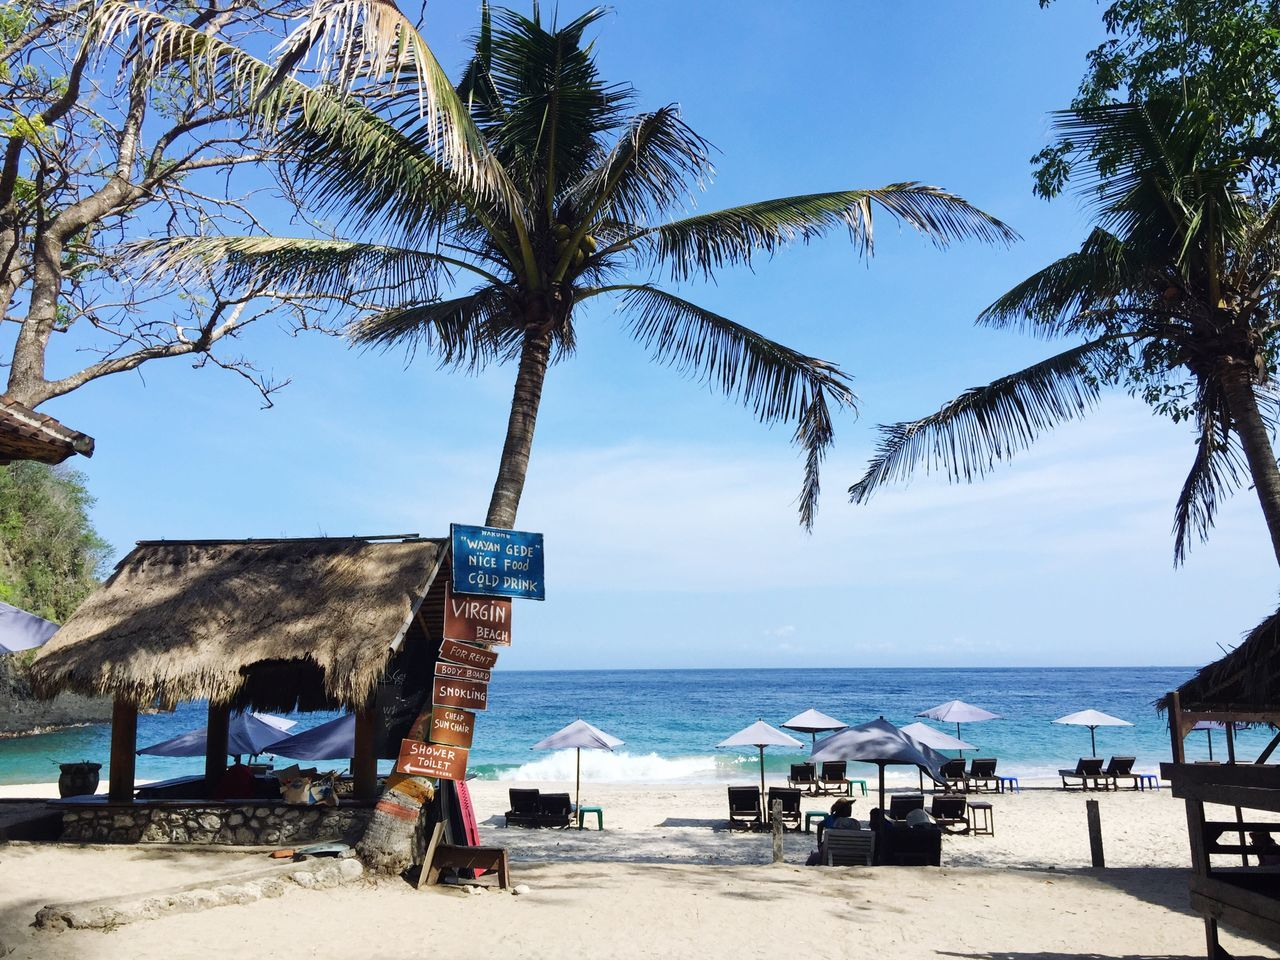 Life is a beach! Bali Bali, Indonesia Candidasa Bali IPhoneography IPhone Iphone6 Iphone6plus Life Is A Beach Exotic Outdoors Snapshot Baliphotography INDONESIA Explore Travel Beach Beachphotography WhiteSandBeach Palms Balinese Life Exploring Landscapes With WhiteWall